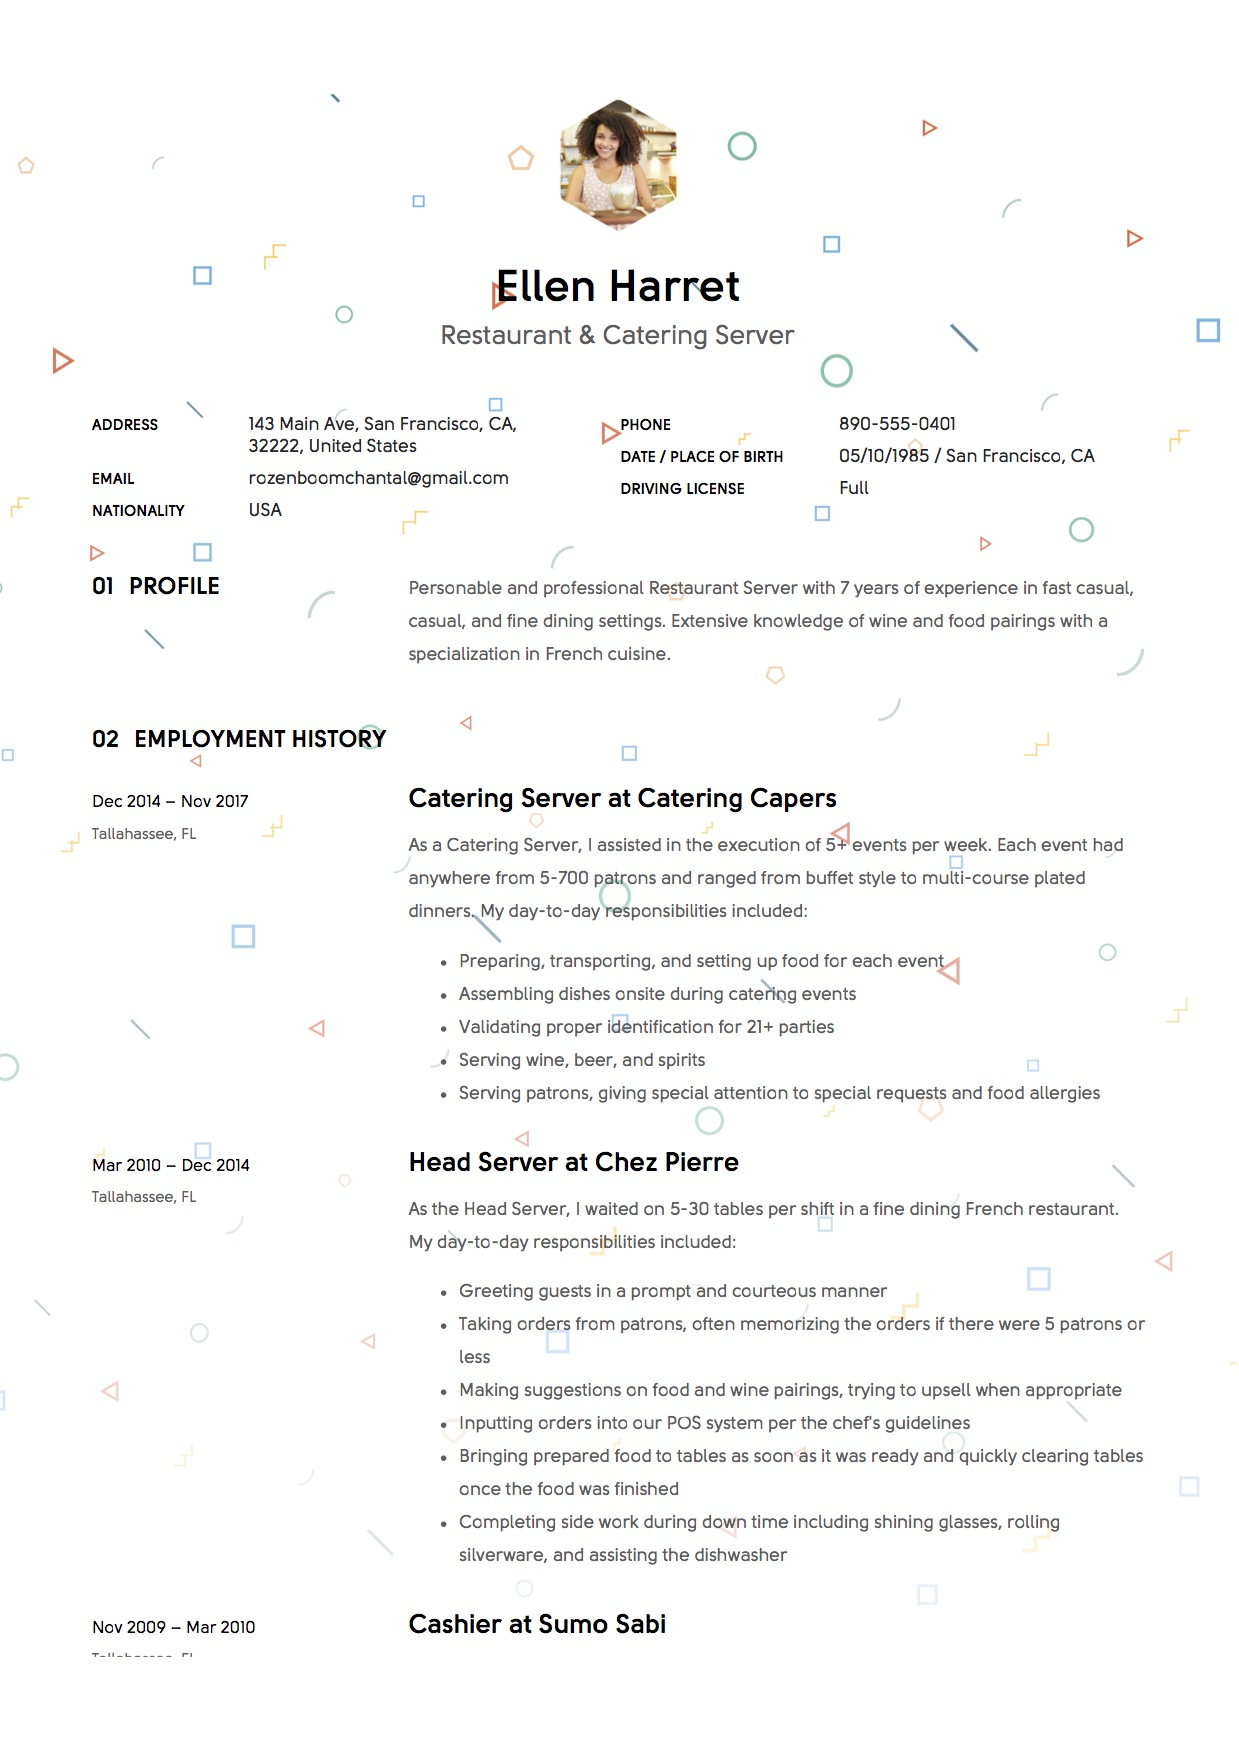 server resume writing guide examples free downloads sample responsibilities ellen harret Resume Sample Server Resume Responsibilities